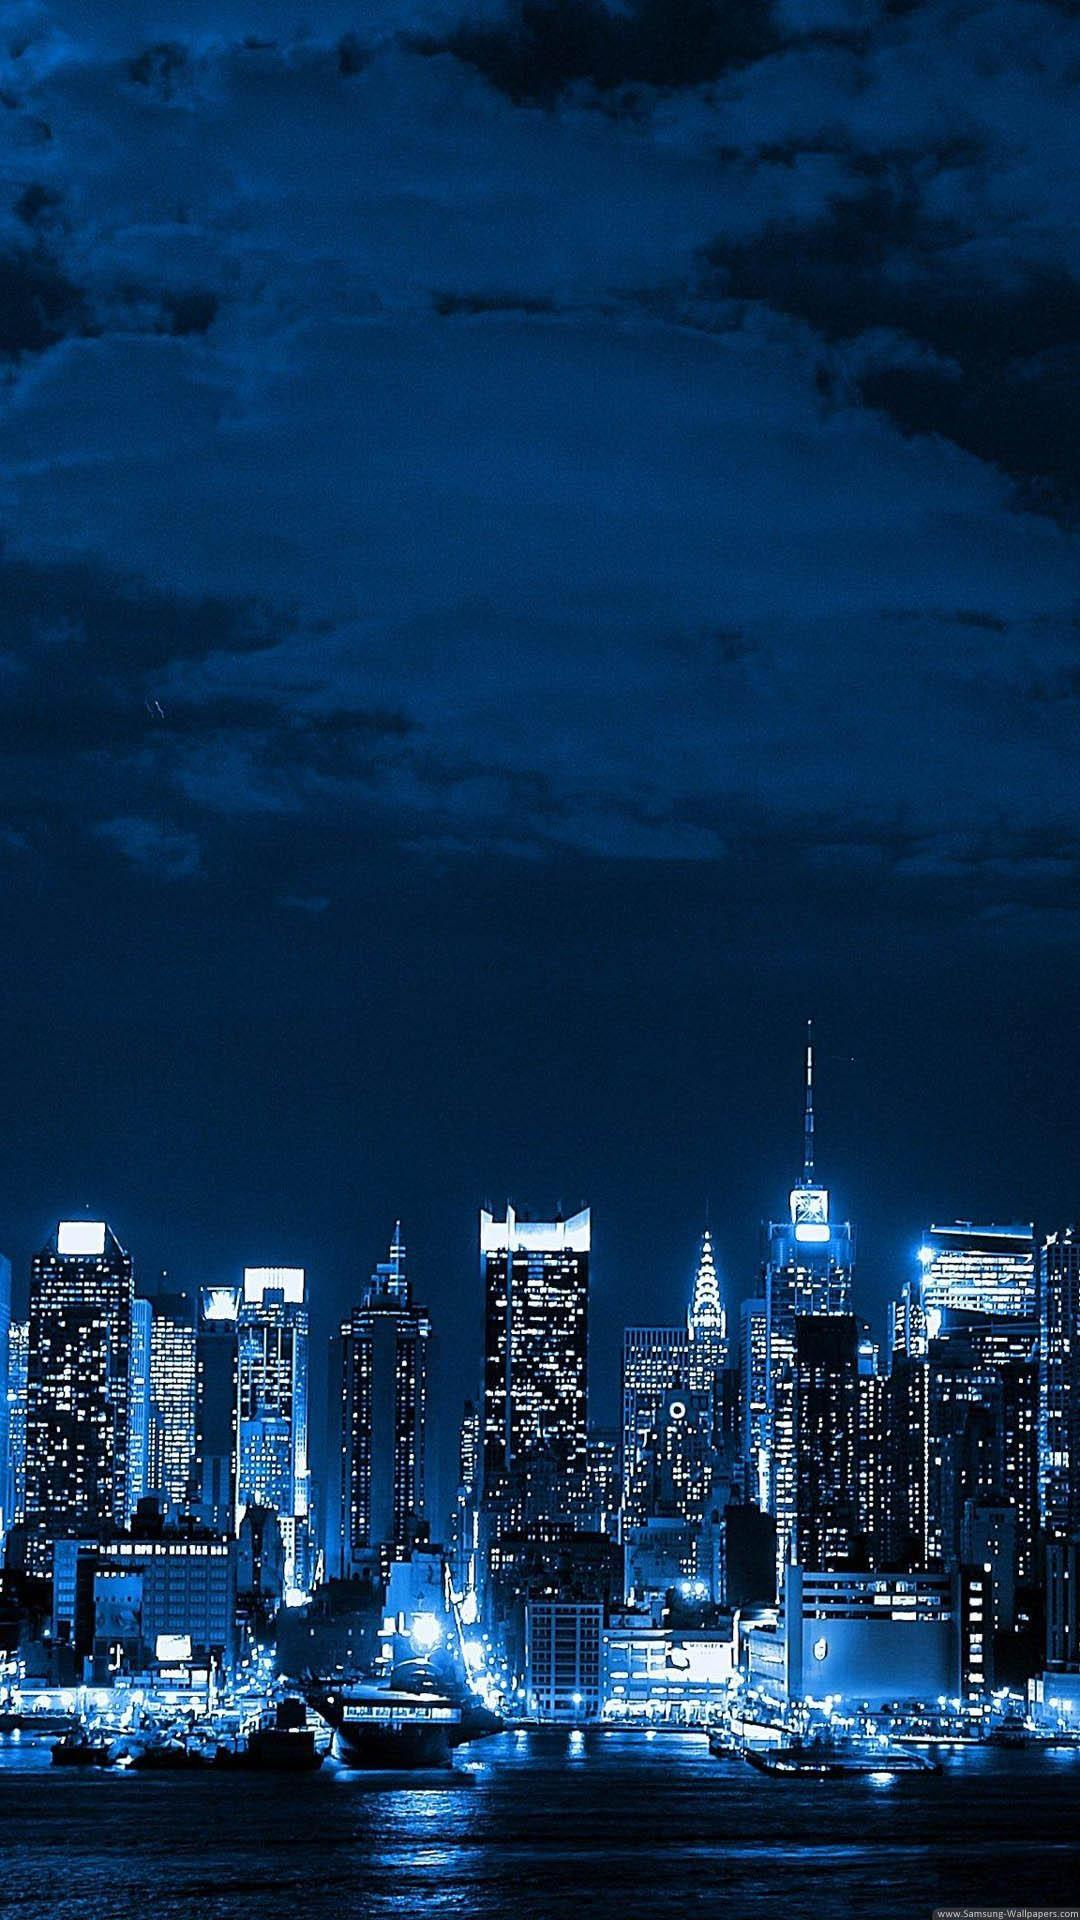 City Night Aesthetic Wallpapers Wallpaper Cave A collection of the top 45 city night wallpapers and backgrounds available for download for free. city night aesthetic wallpapers